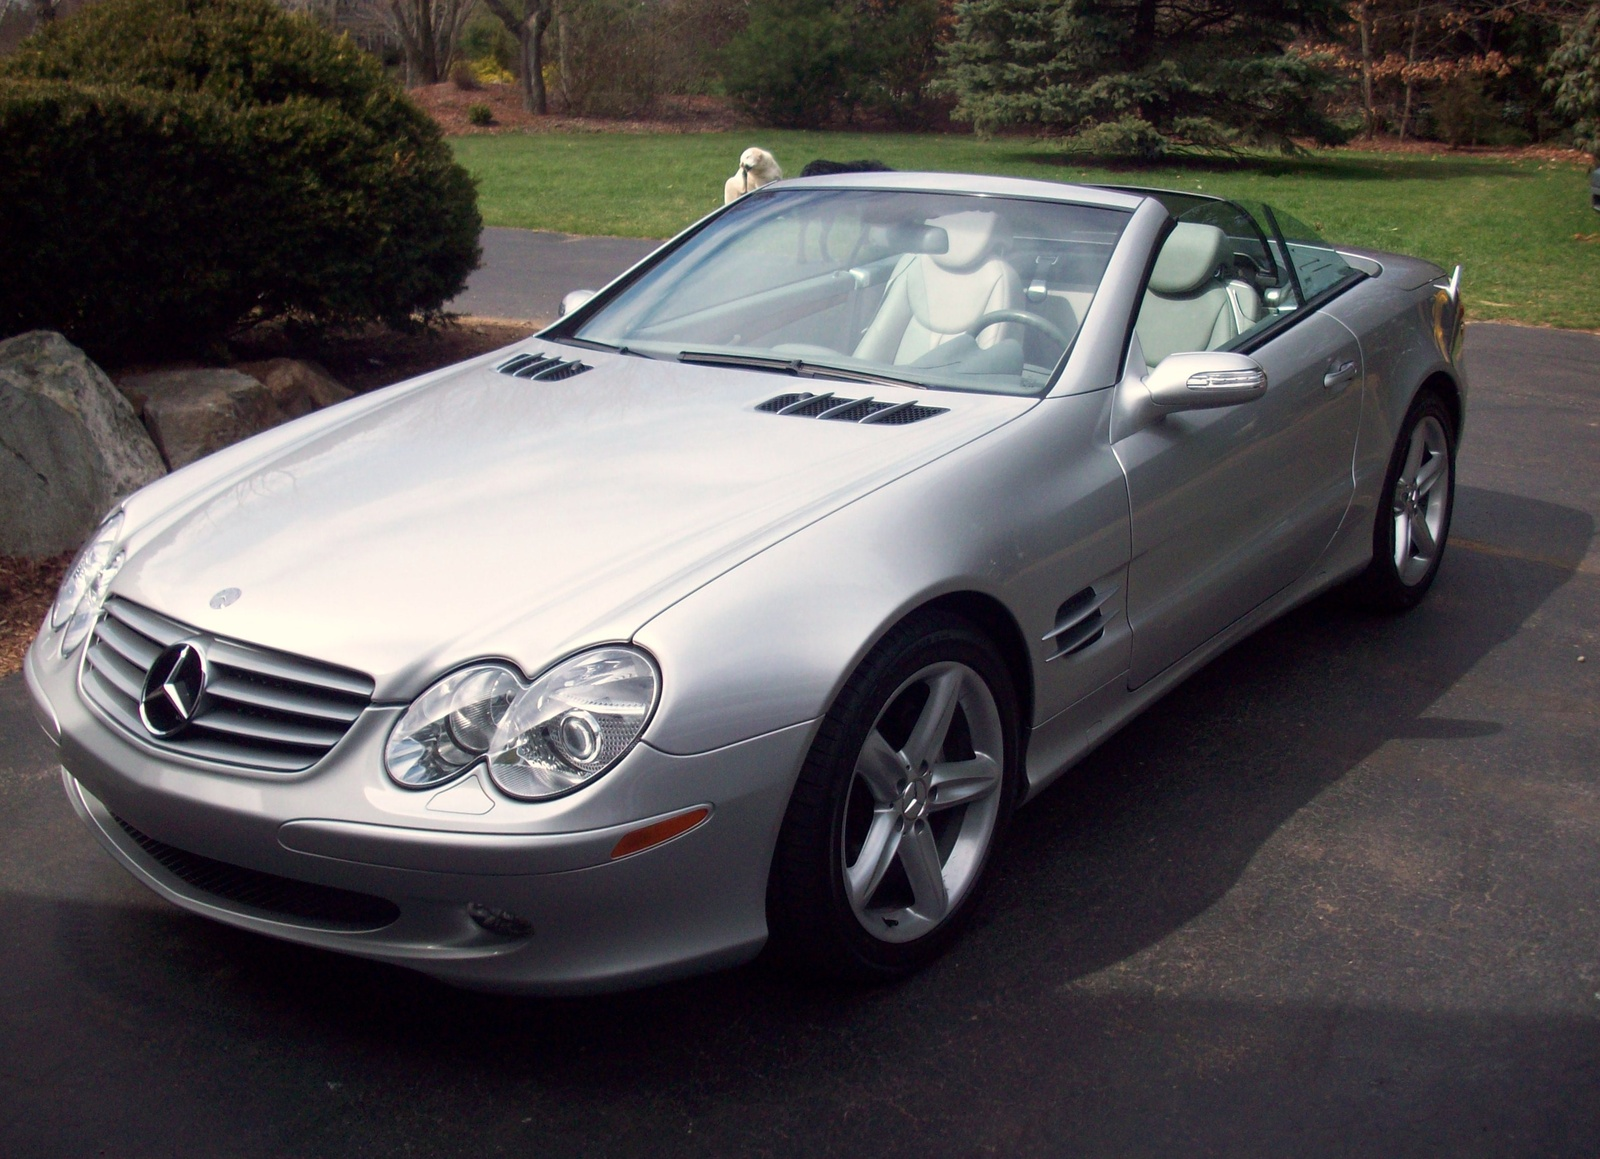 2004 Mercedes-Benz SL500 picture